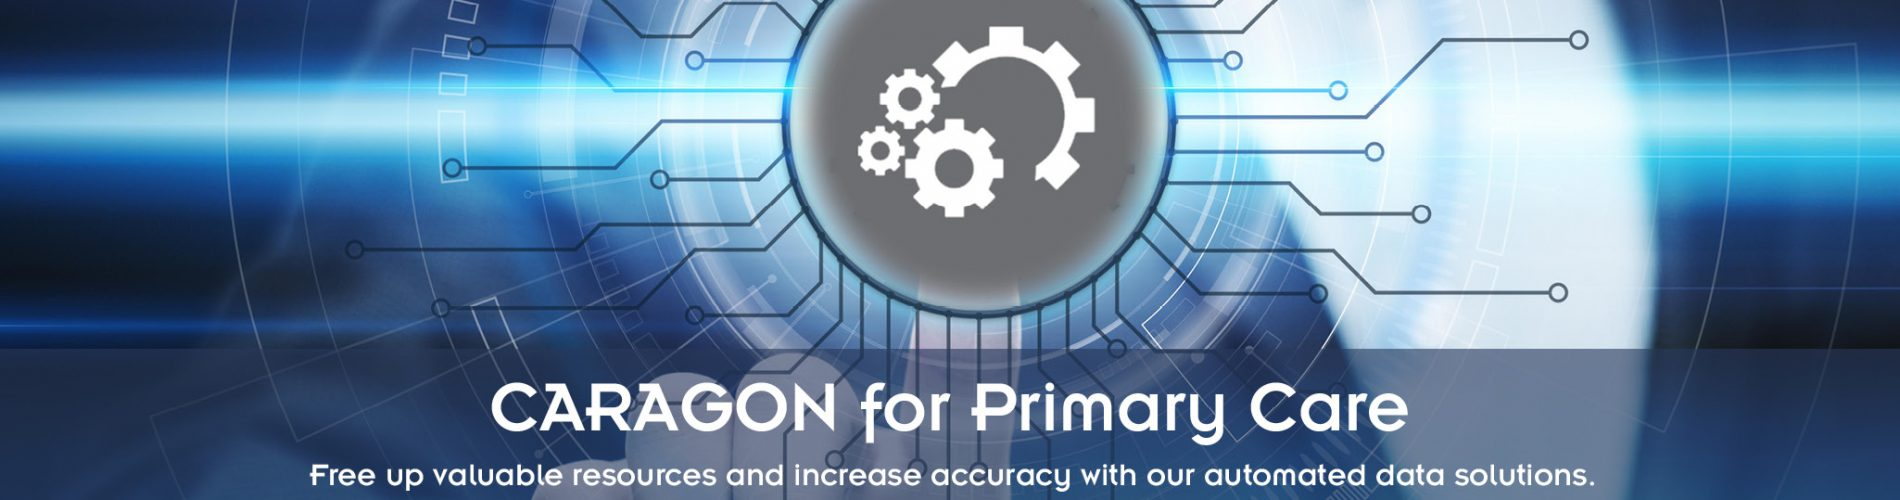 CARAGON for Primary Care